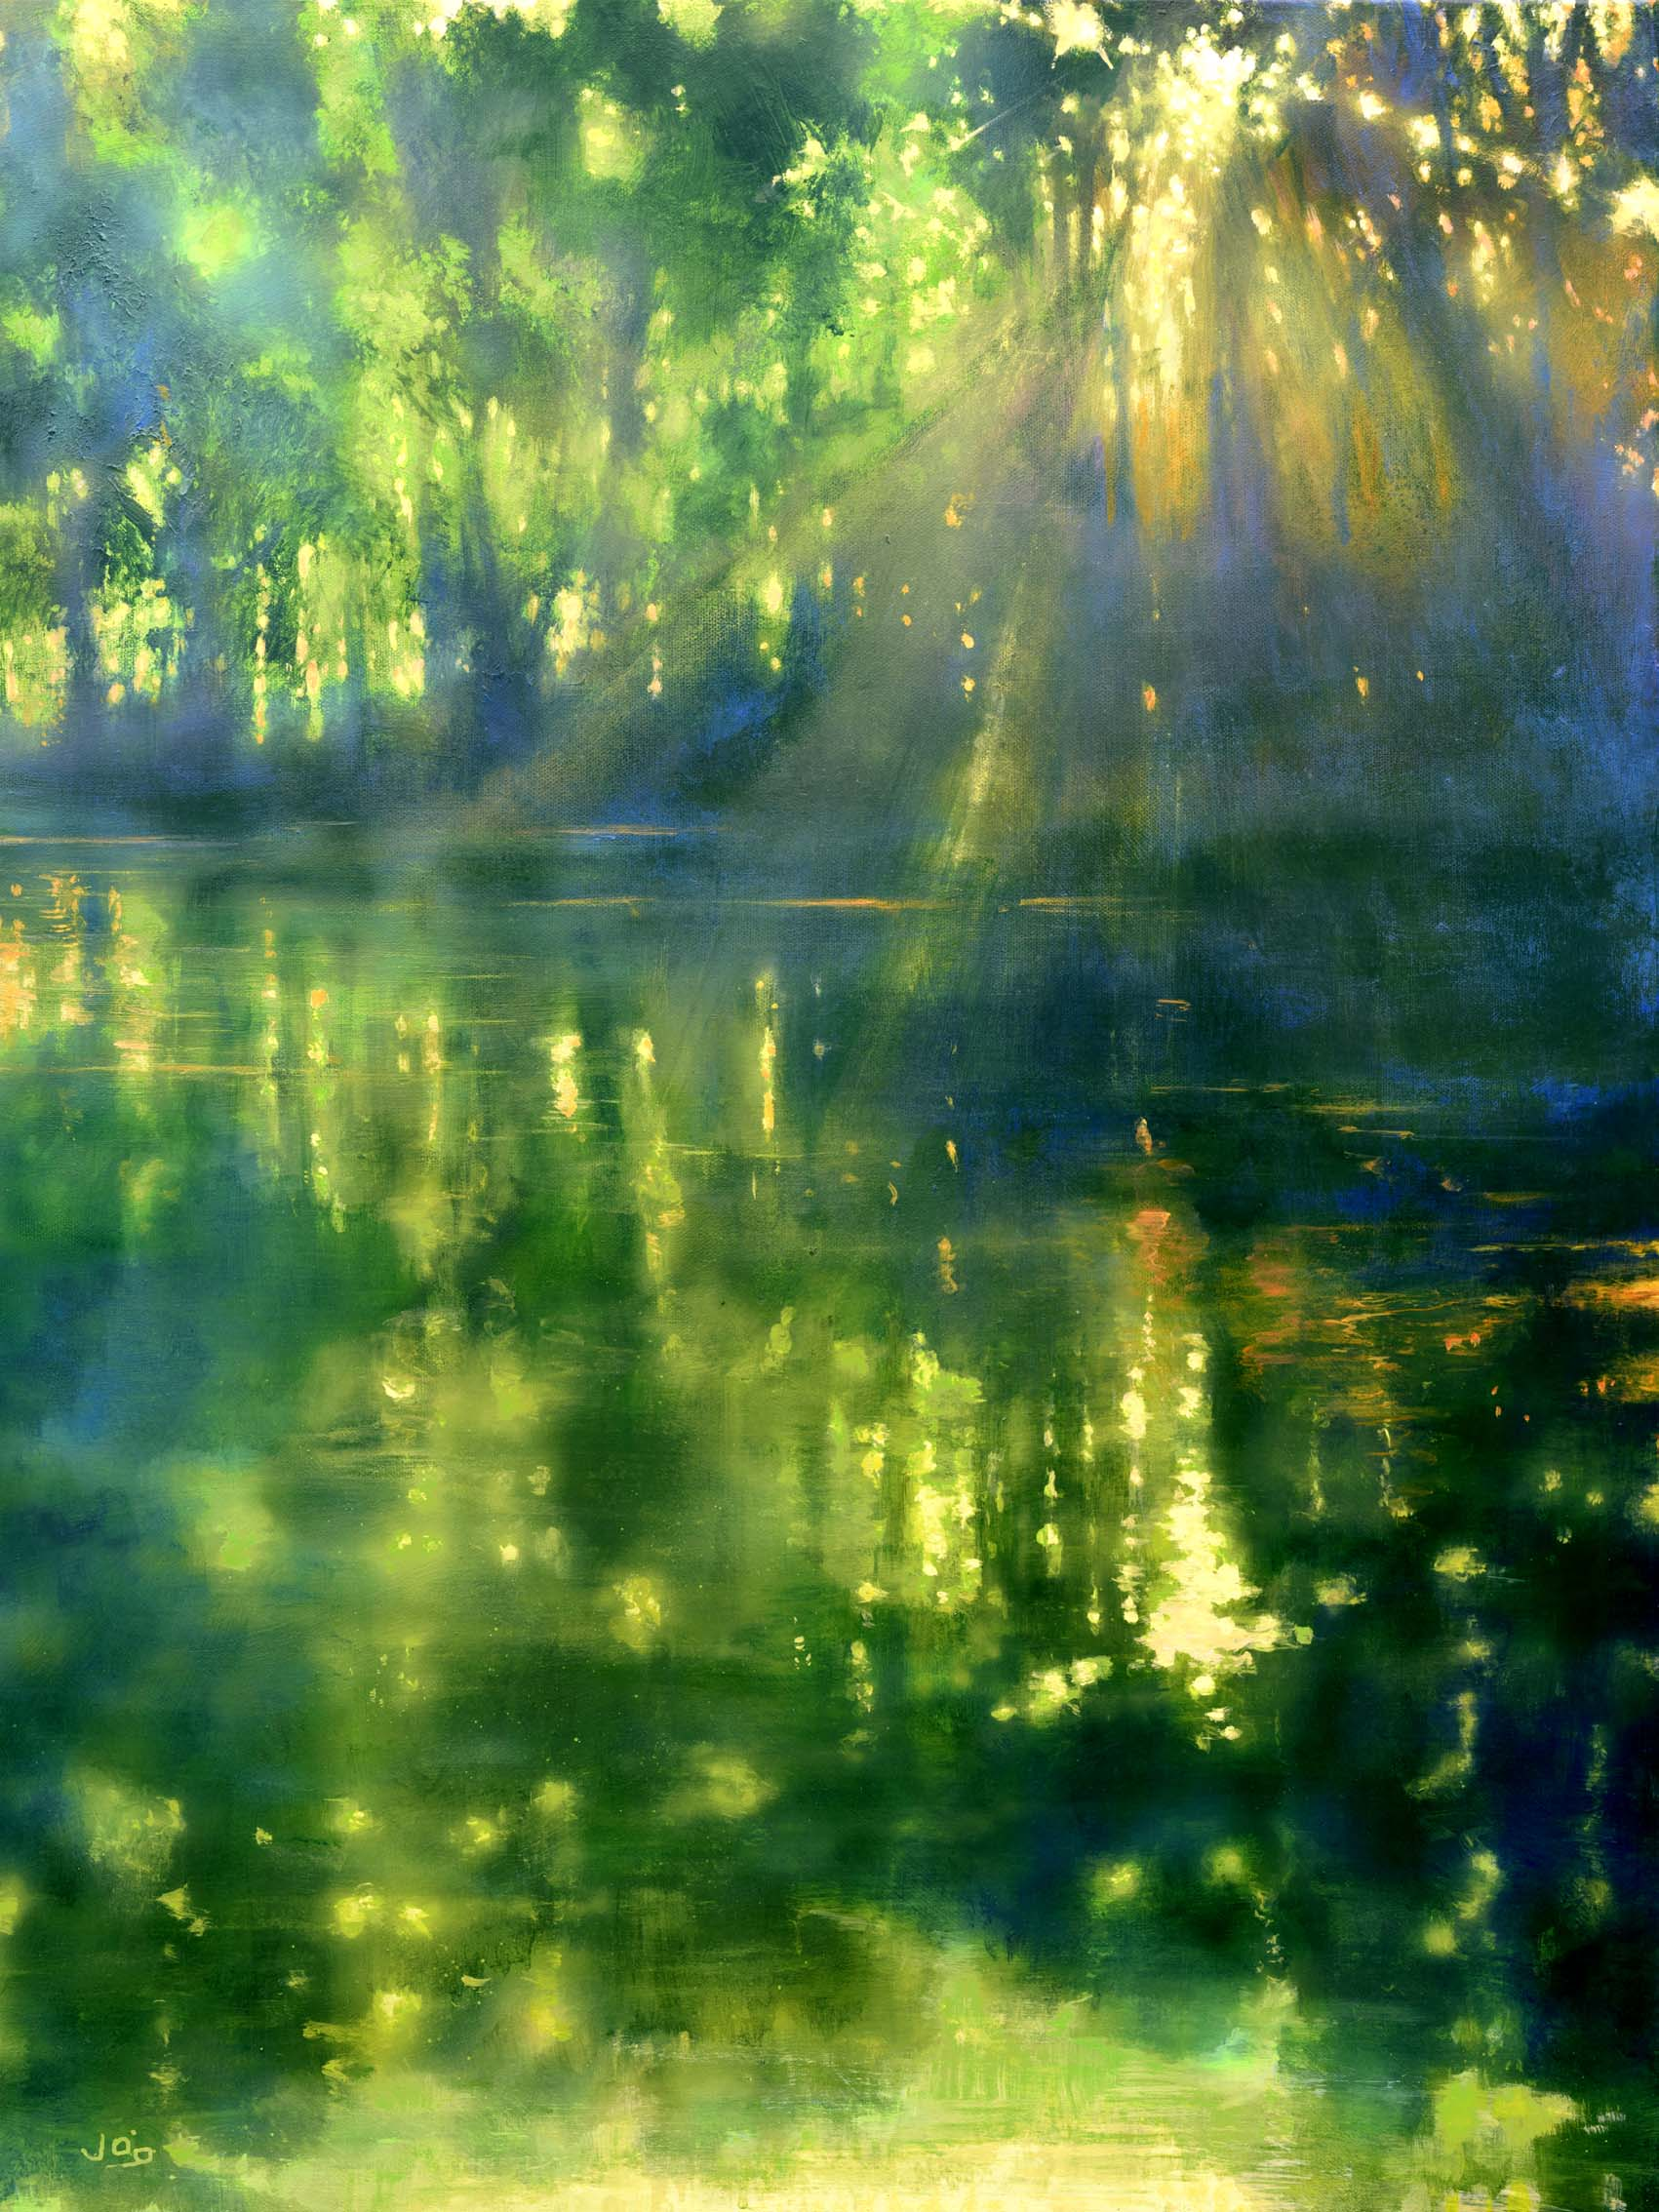 Large river painting, mainly green, with reflections in water and dappled light called On the Banks of the Ouvèze River III by John O'Grady